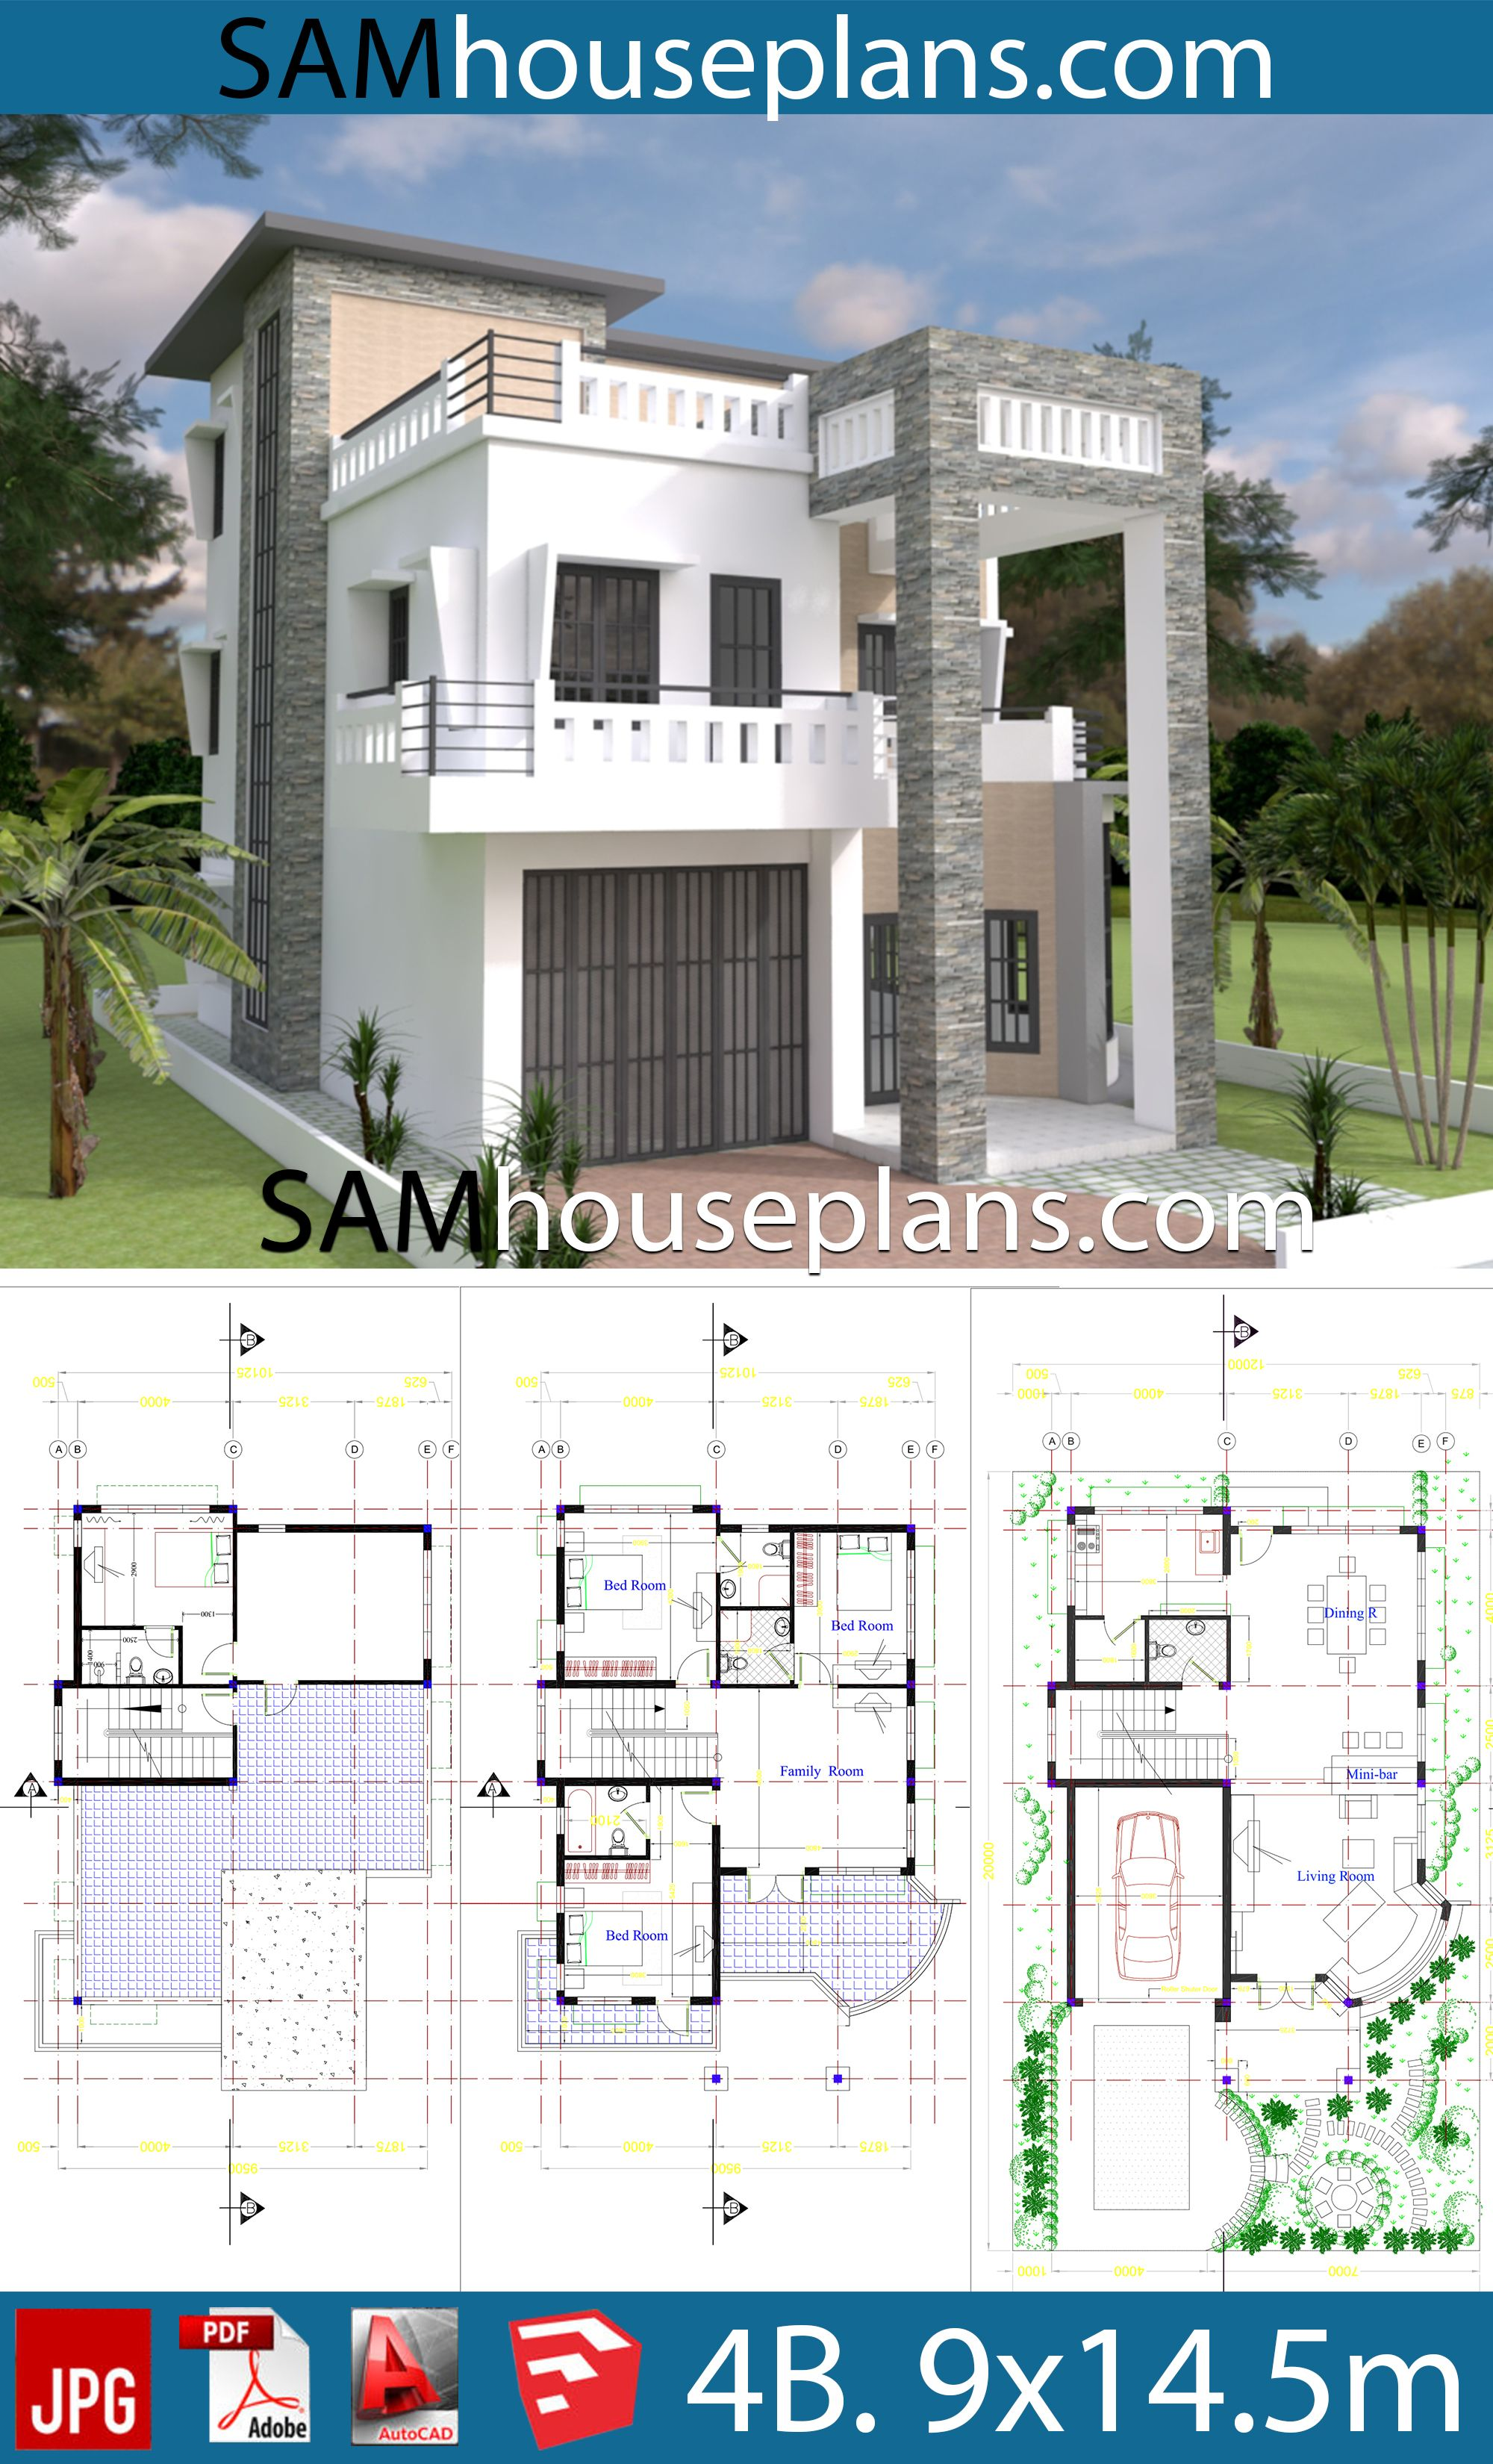 House Plans 9x14 5 With 4 Bedrooms Sam House Plans House Plans Dream House Plans Mansion Floor Plan